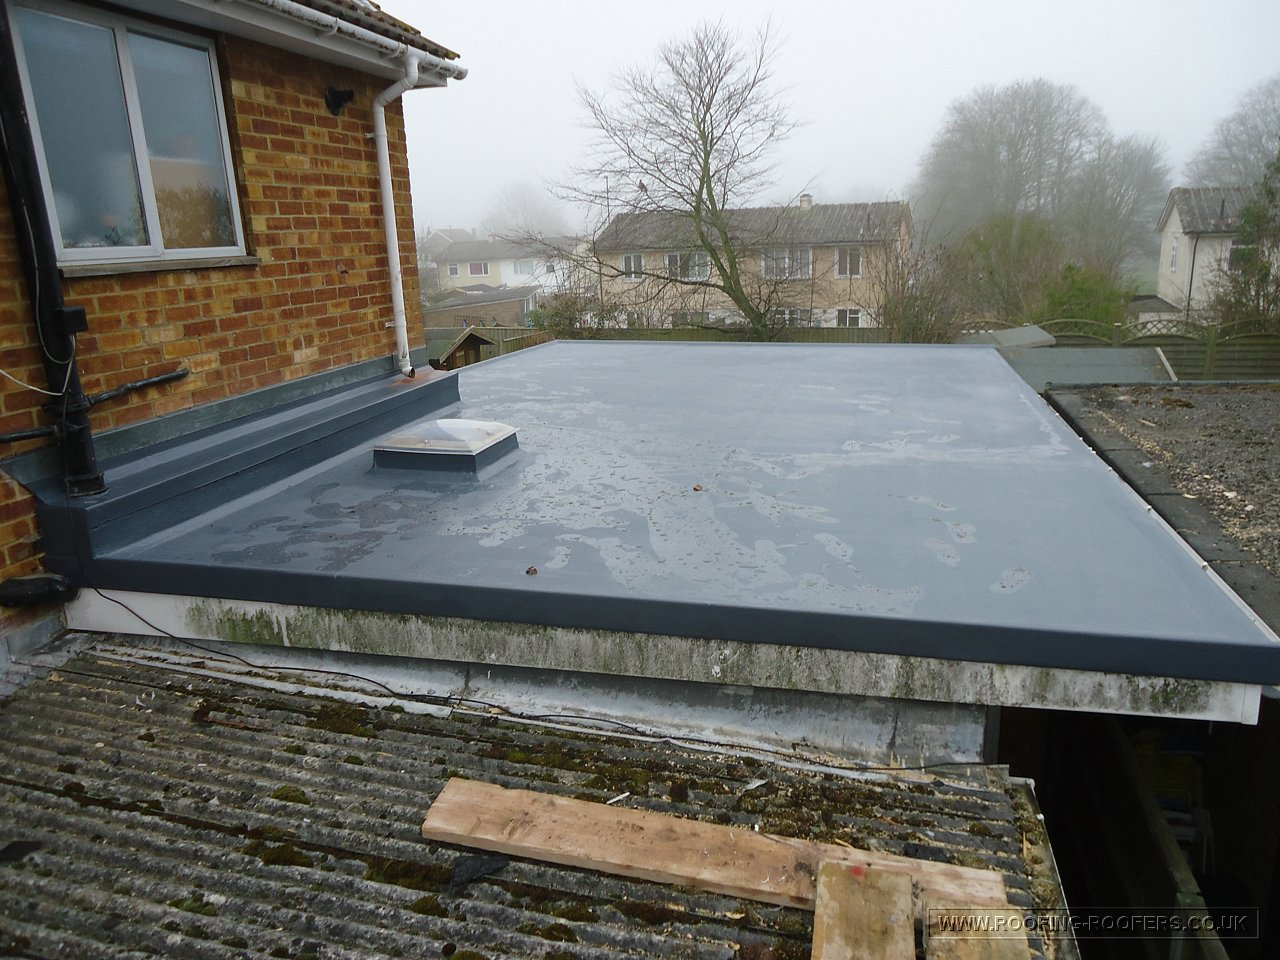 Grp Roofing And Building Repairs Specialists